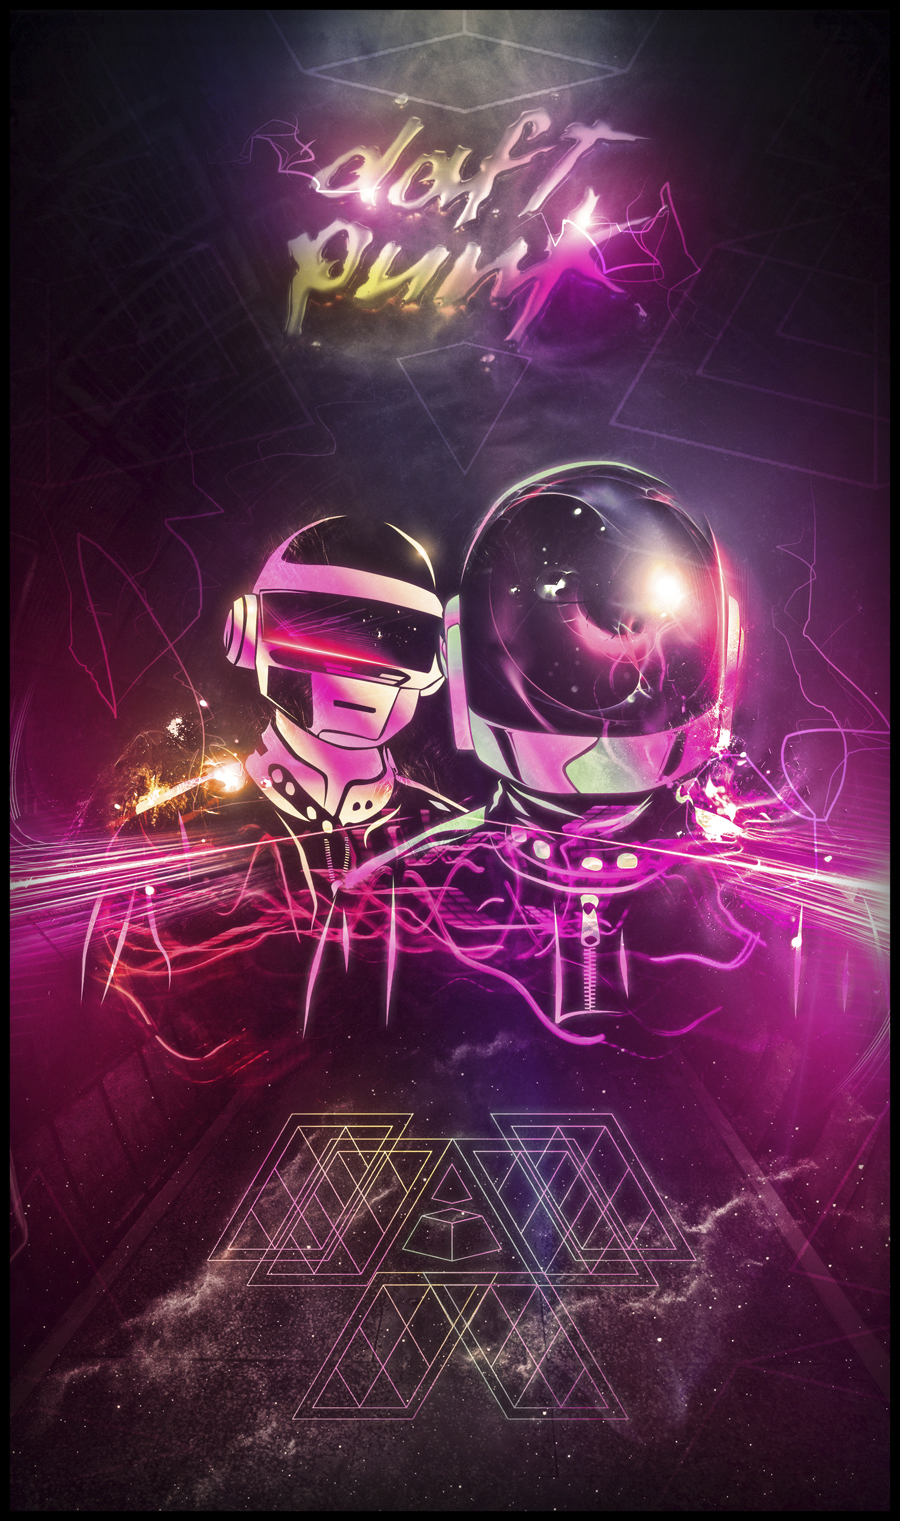 daft punk love by bosslogic1 A Tribute: 40 Awesome Daft Punk Artworks